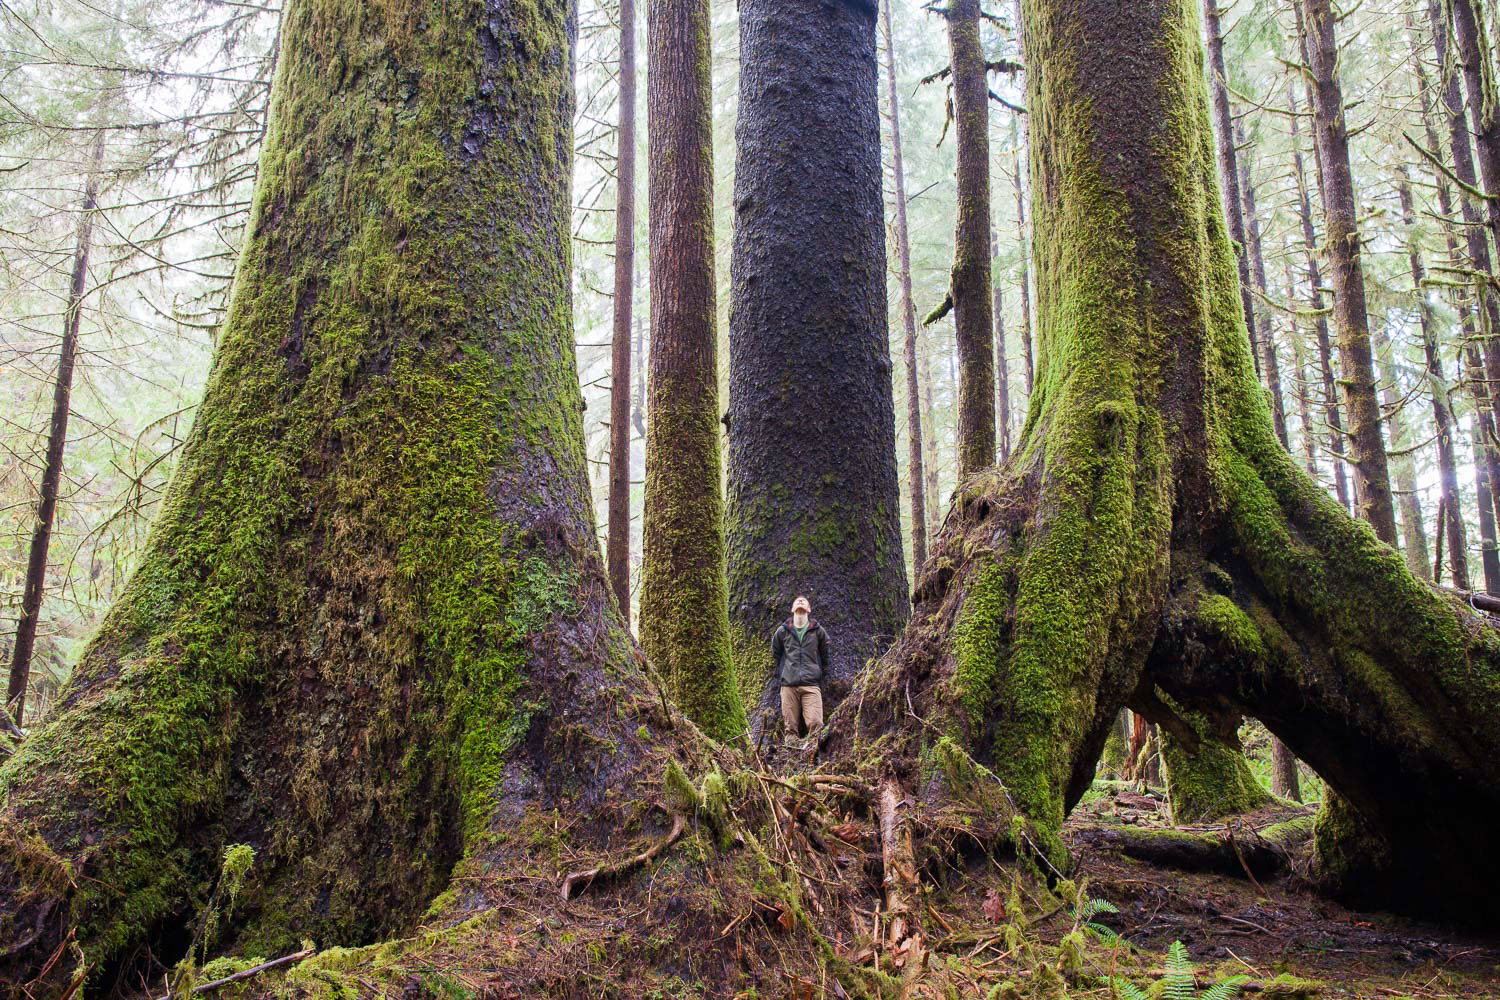 I feel most alive when alone in the woods. Your senses awaken and your intuition becomes your guiding voice. While wandering through a remote patch of old-growth forest in the Klanawa Valley between Bamfield and Nitinat Lake, I heard the sounds of twigs snapping up ahead. Eyes wide and hairs on end, awaiting to determine nature the sound, a large bull elk appeared along with a group of 4 or 5 females. Relieved (slightly), it was beautiful to see them up close as a guest in their home. As quietly as they appeared they slipped away back into the woods. As I fruitlessly tried to follow their path, I stumbled upon this incredible trio of Sitka spruce trees. You just never know what amazing experience may await around the next corner out there in the woods.  Canon 5D MK2   24-70 f/4L IS   0.6 sec   f/10   ISO 400.